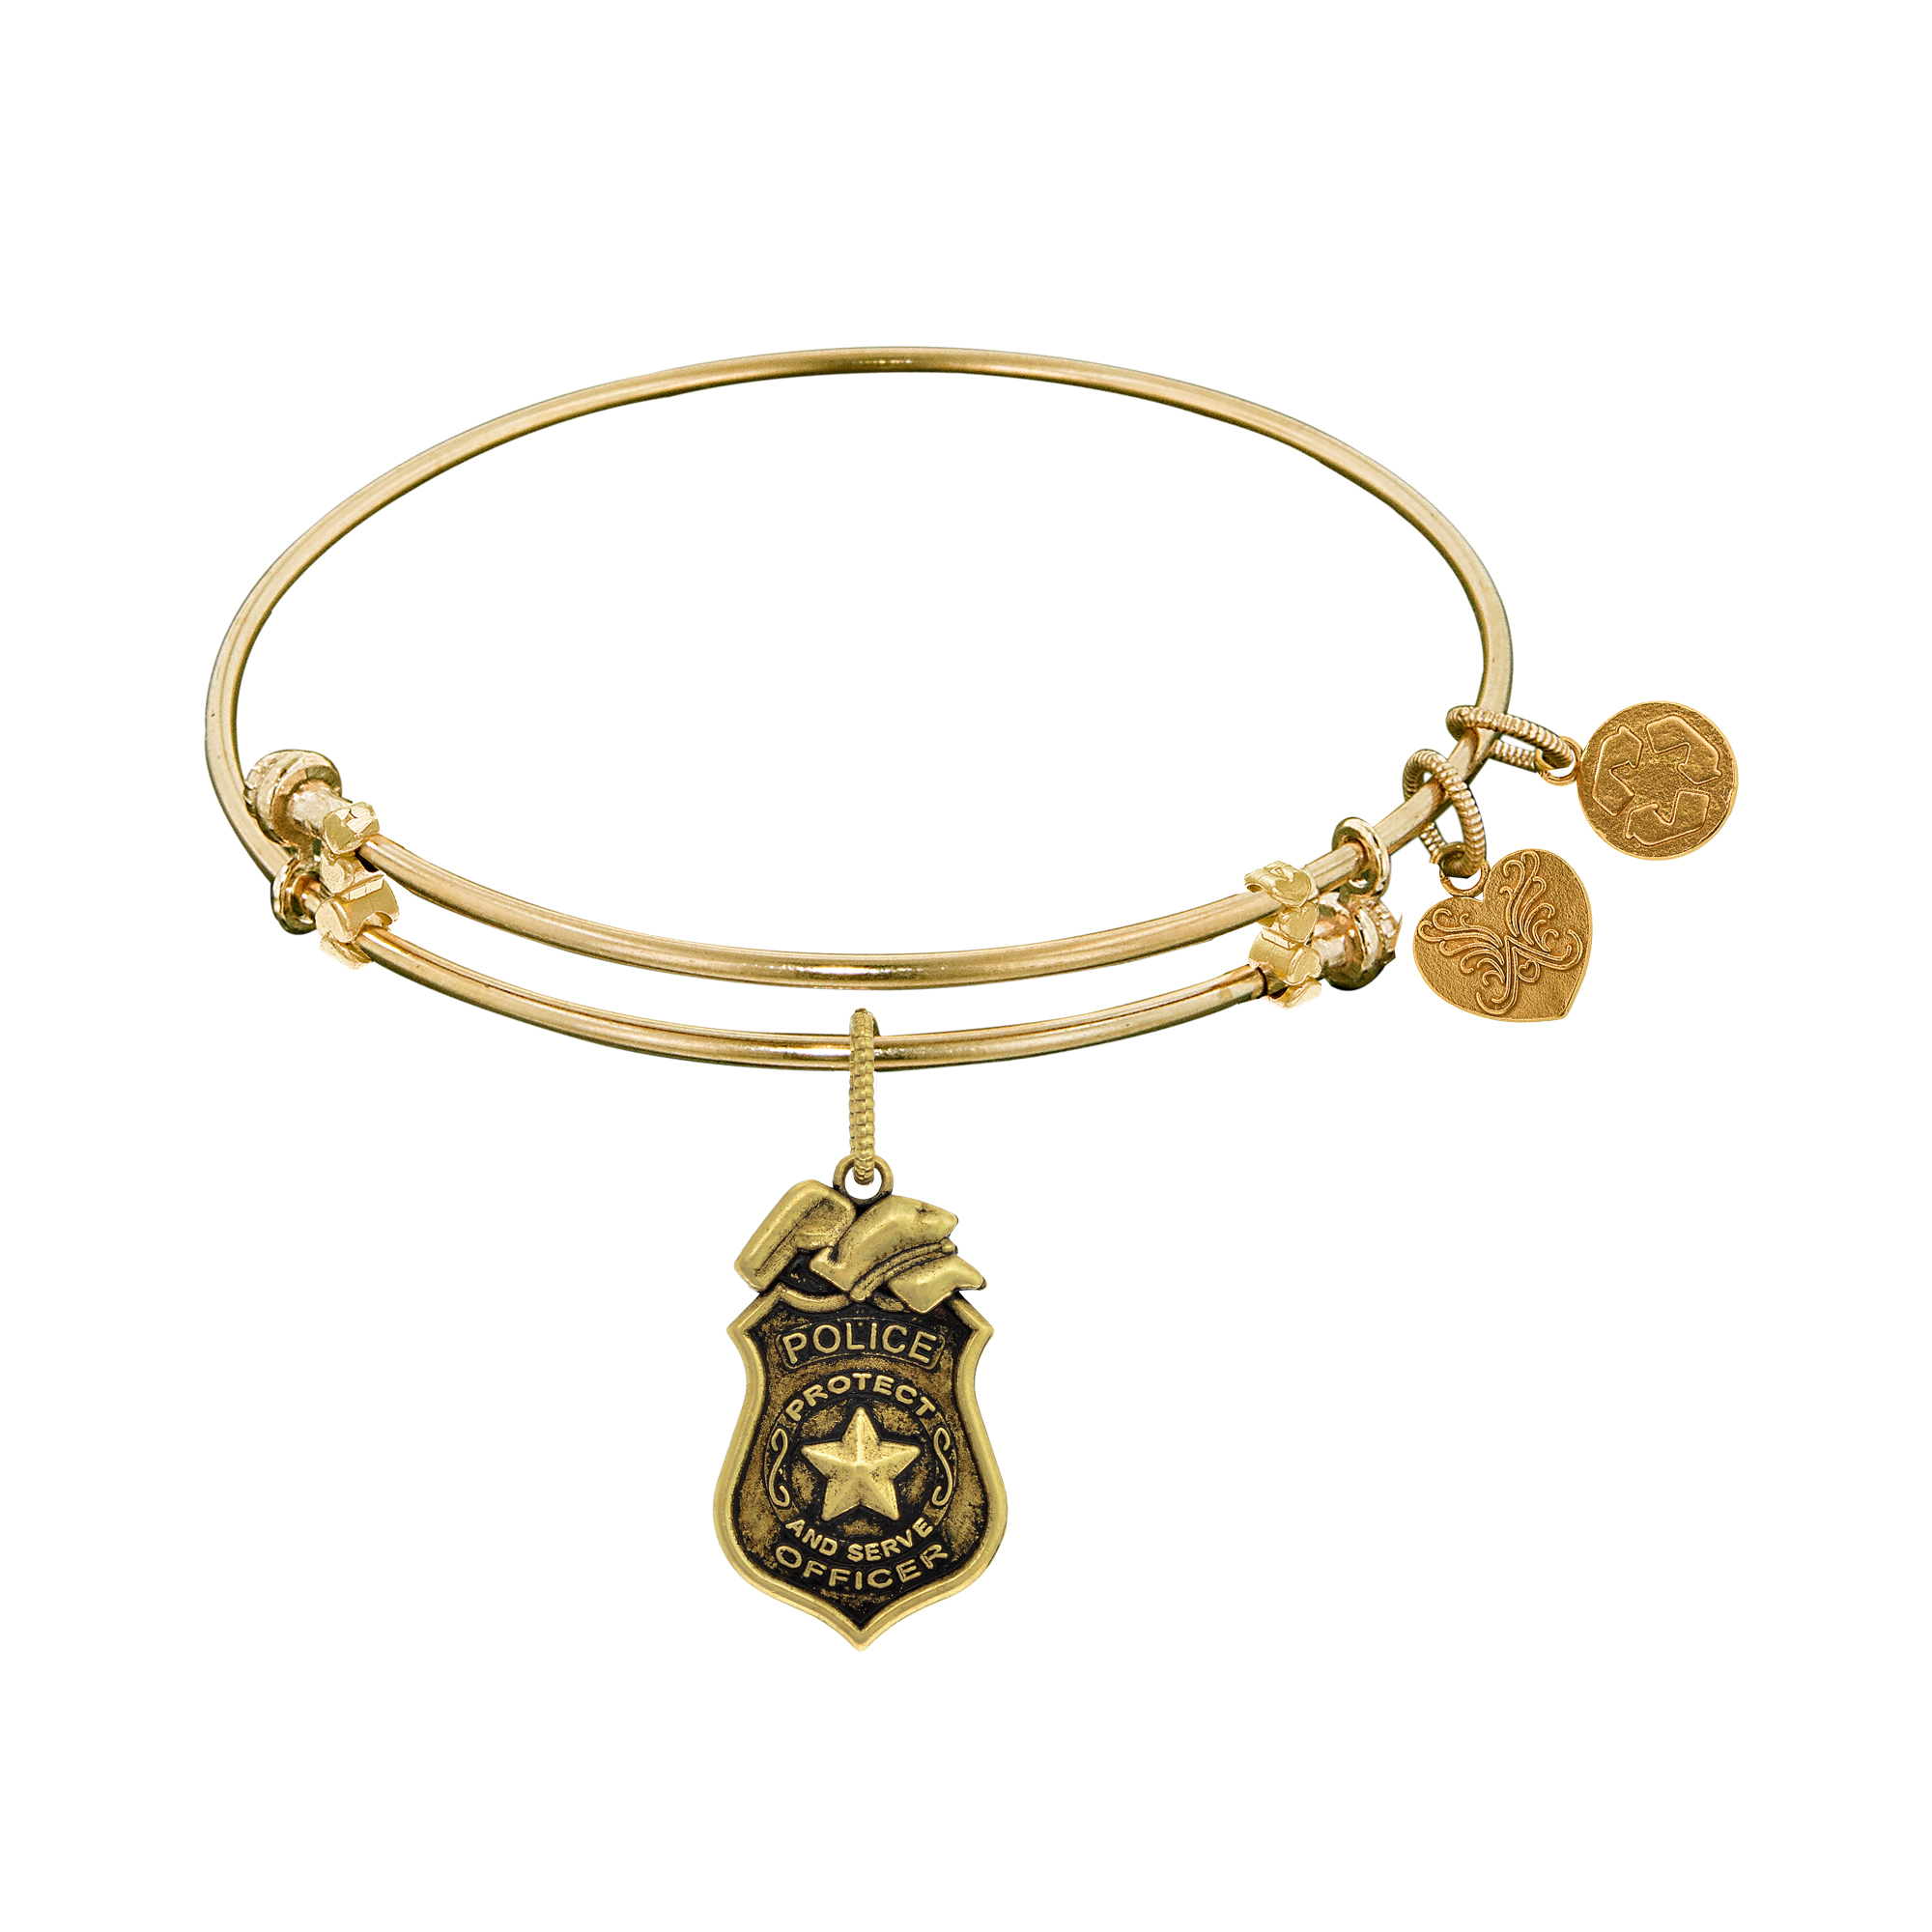 Police Officer Charm Expandable Bangle Bracelet, 7.25″